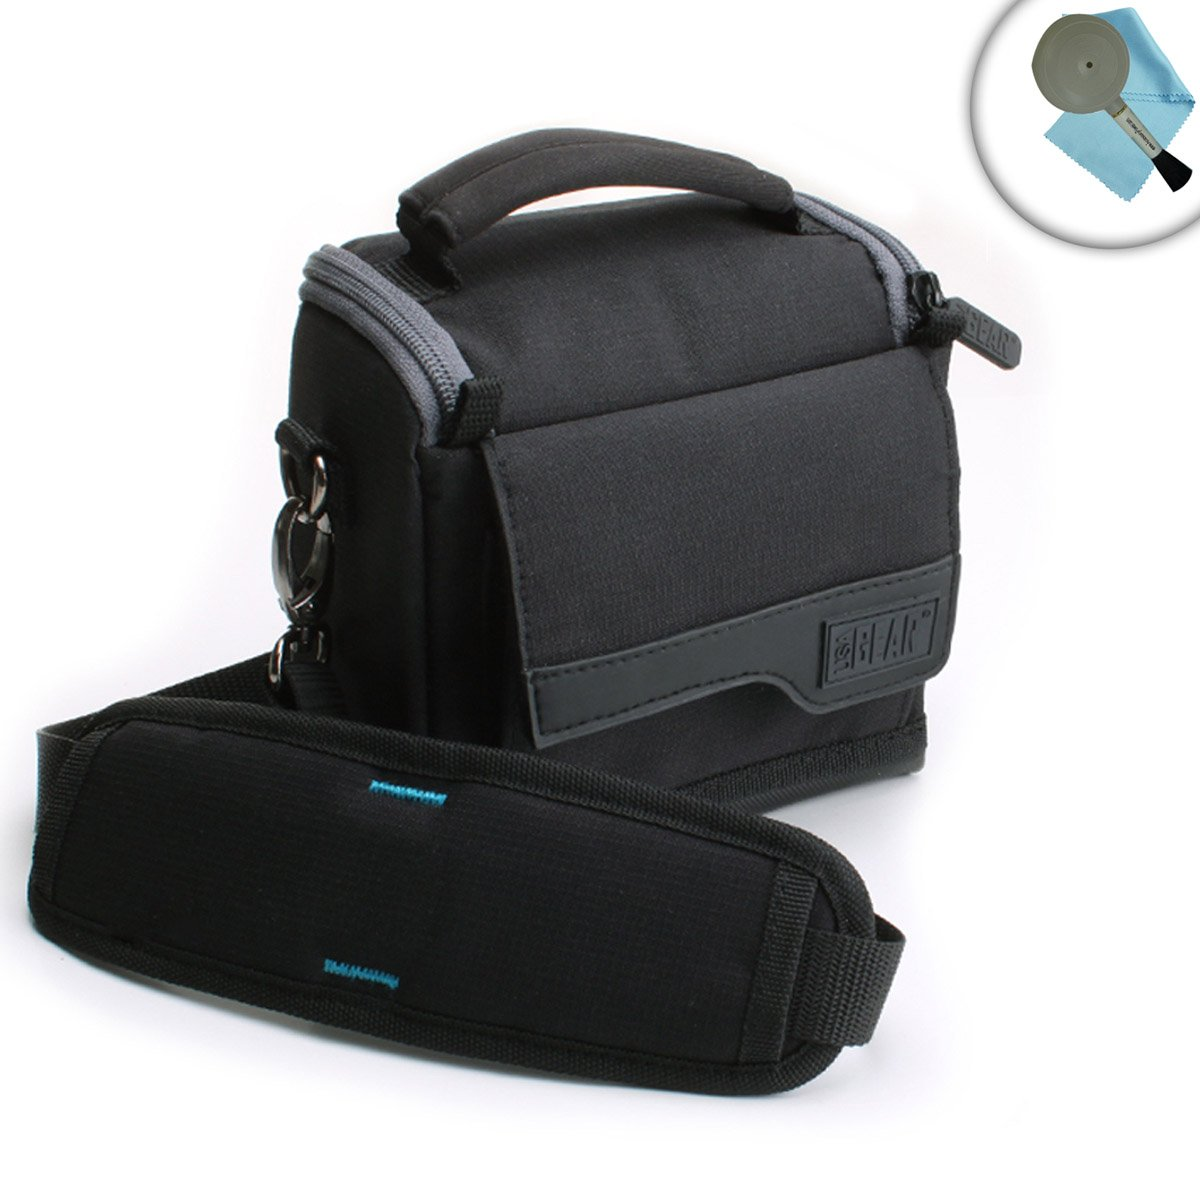 Sony HDRCX405 Handycam Camcorder Carrying Case with Durable Nylon Exterior and Detachable Shoulder Strap by USA GEAR - Accessory Pocket Holds Cables , Chargers , Memory Cards and More by USA Gear